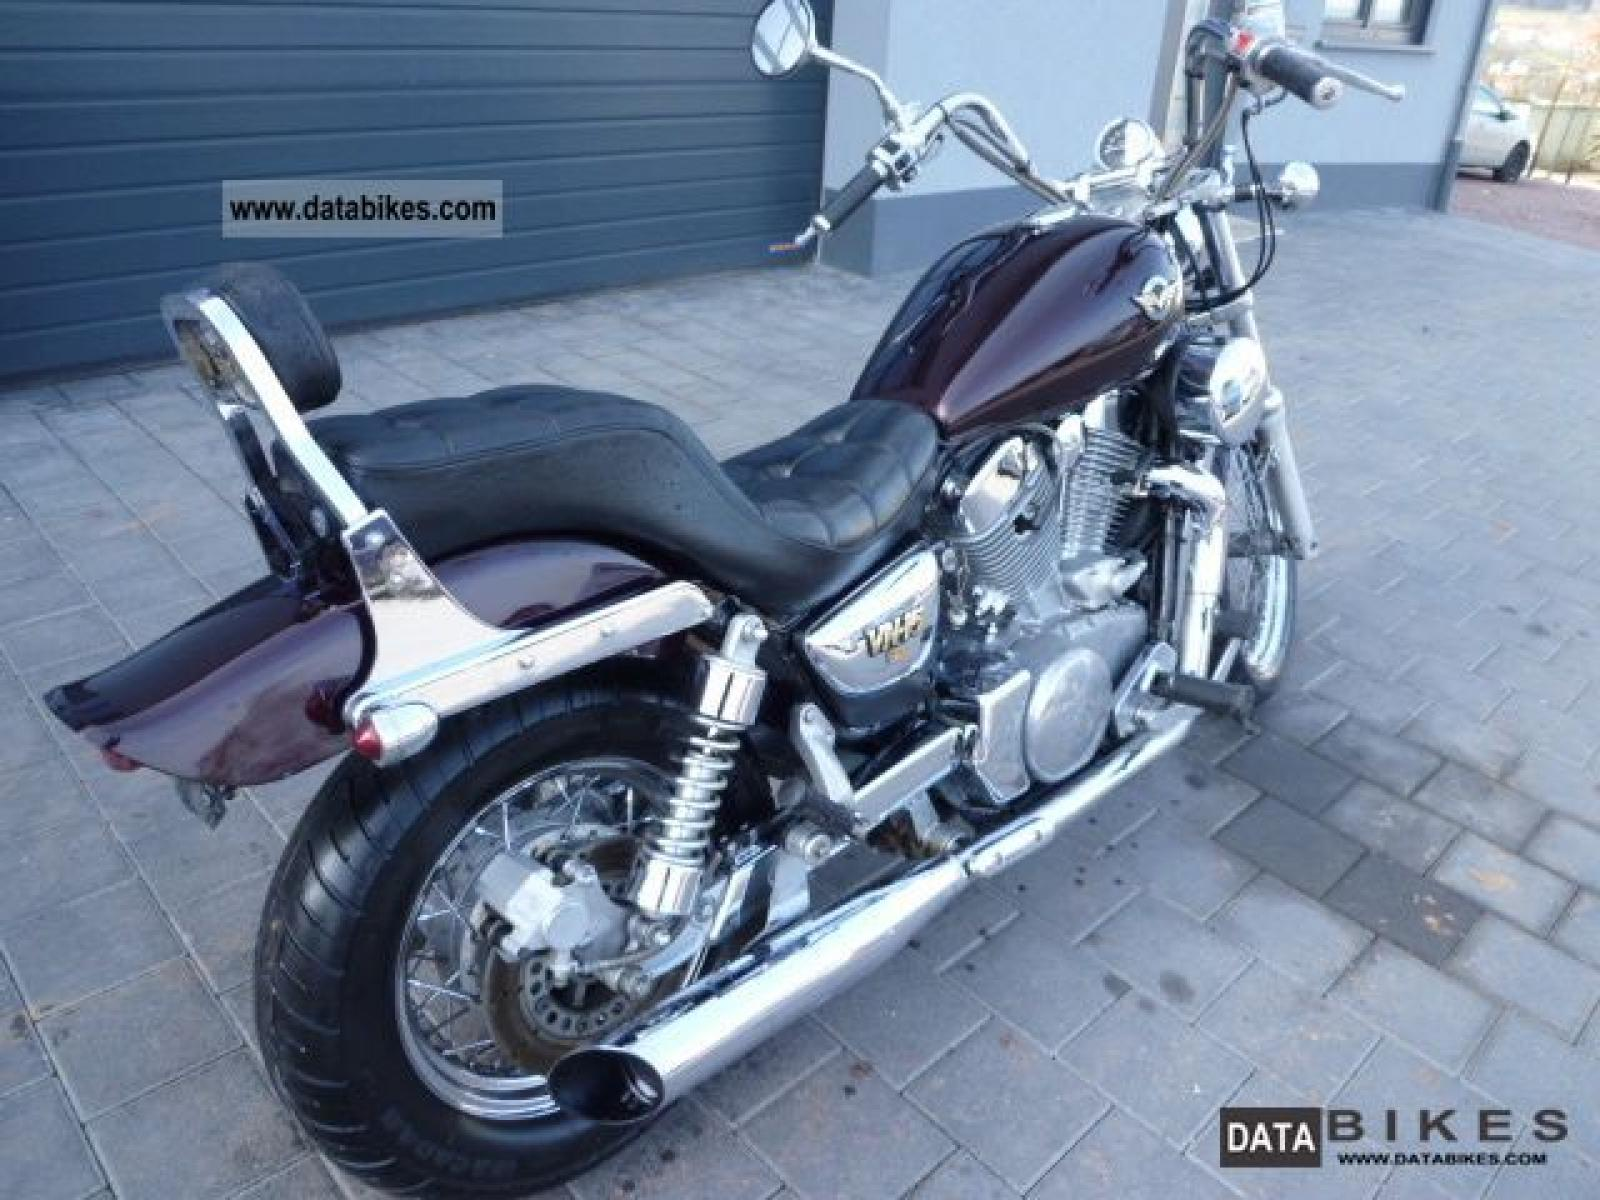 1994 kawasaki vn 1500 pics specs and information. Black Bedroom Furniture Sets. Home Design Ideas